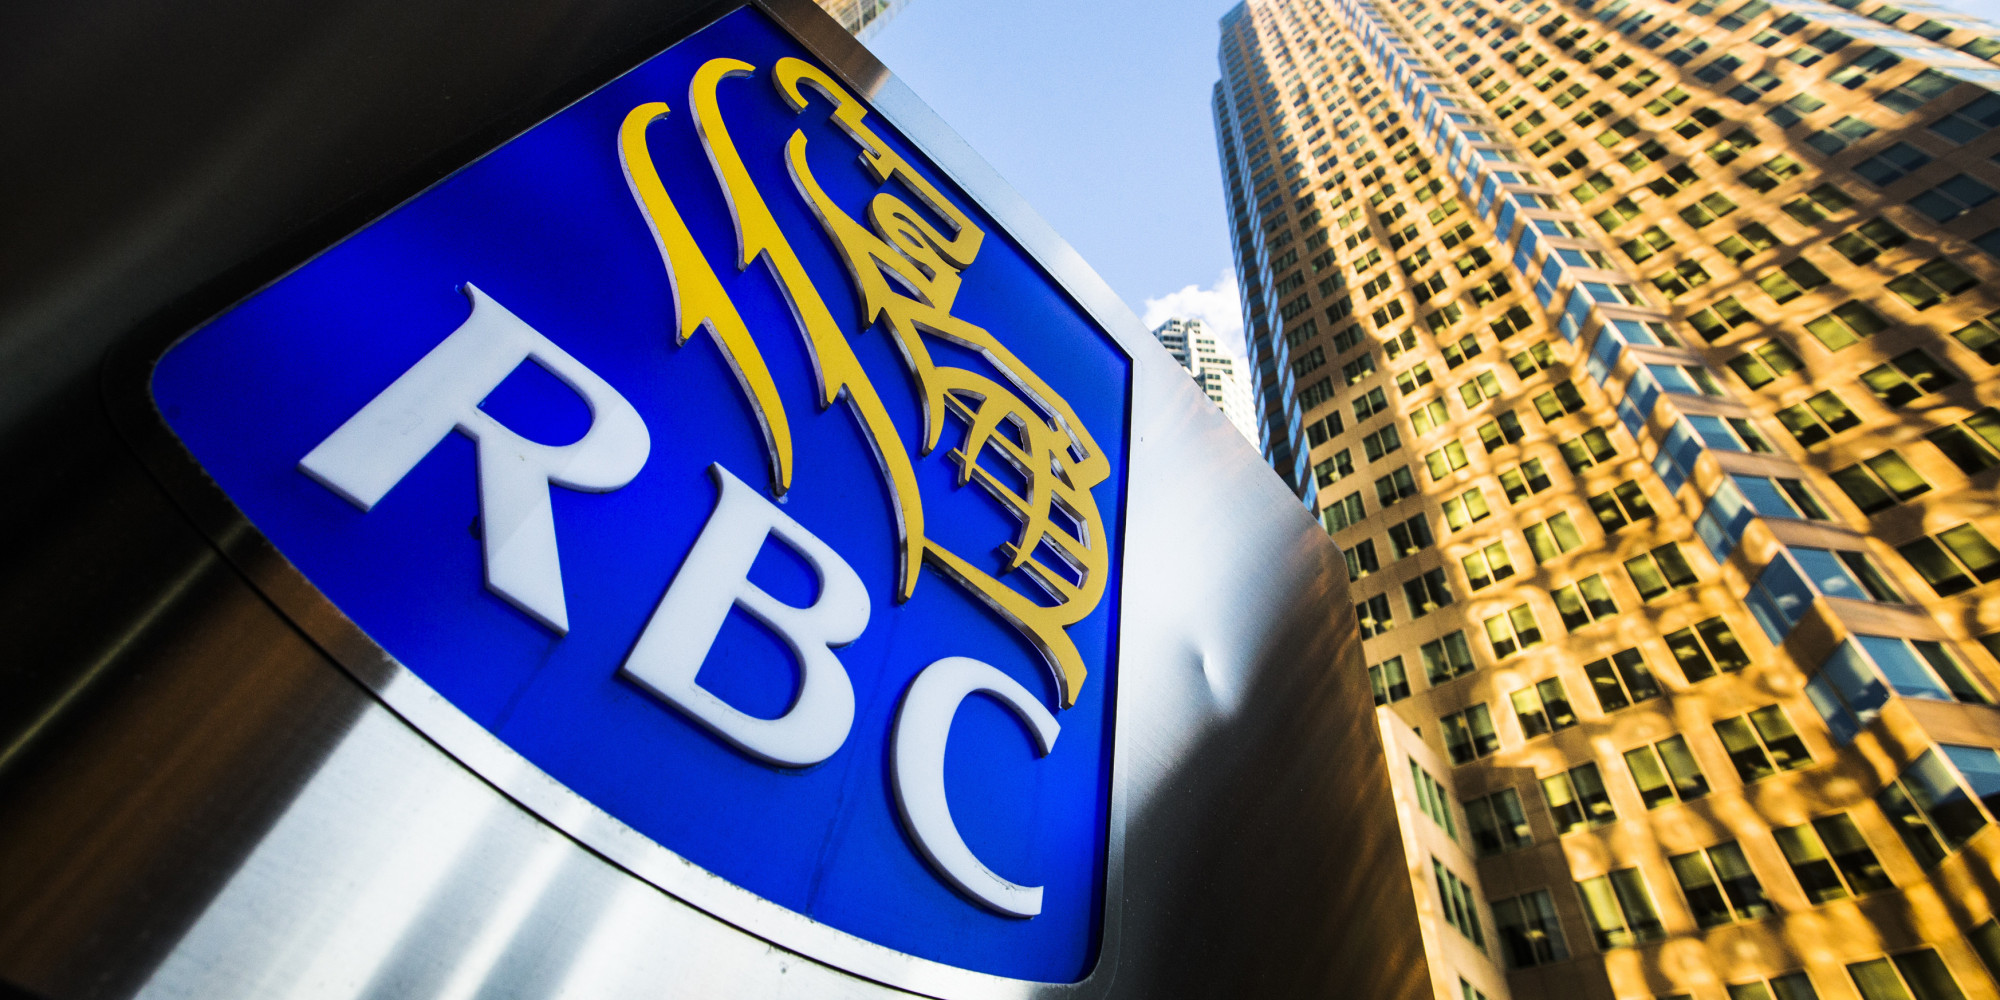 Rbc Capital Markets >> LIBOR Lawsuits Could Have Bankrupted RBC, Says U.S. Court